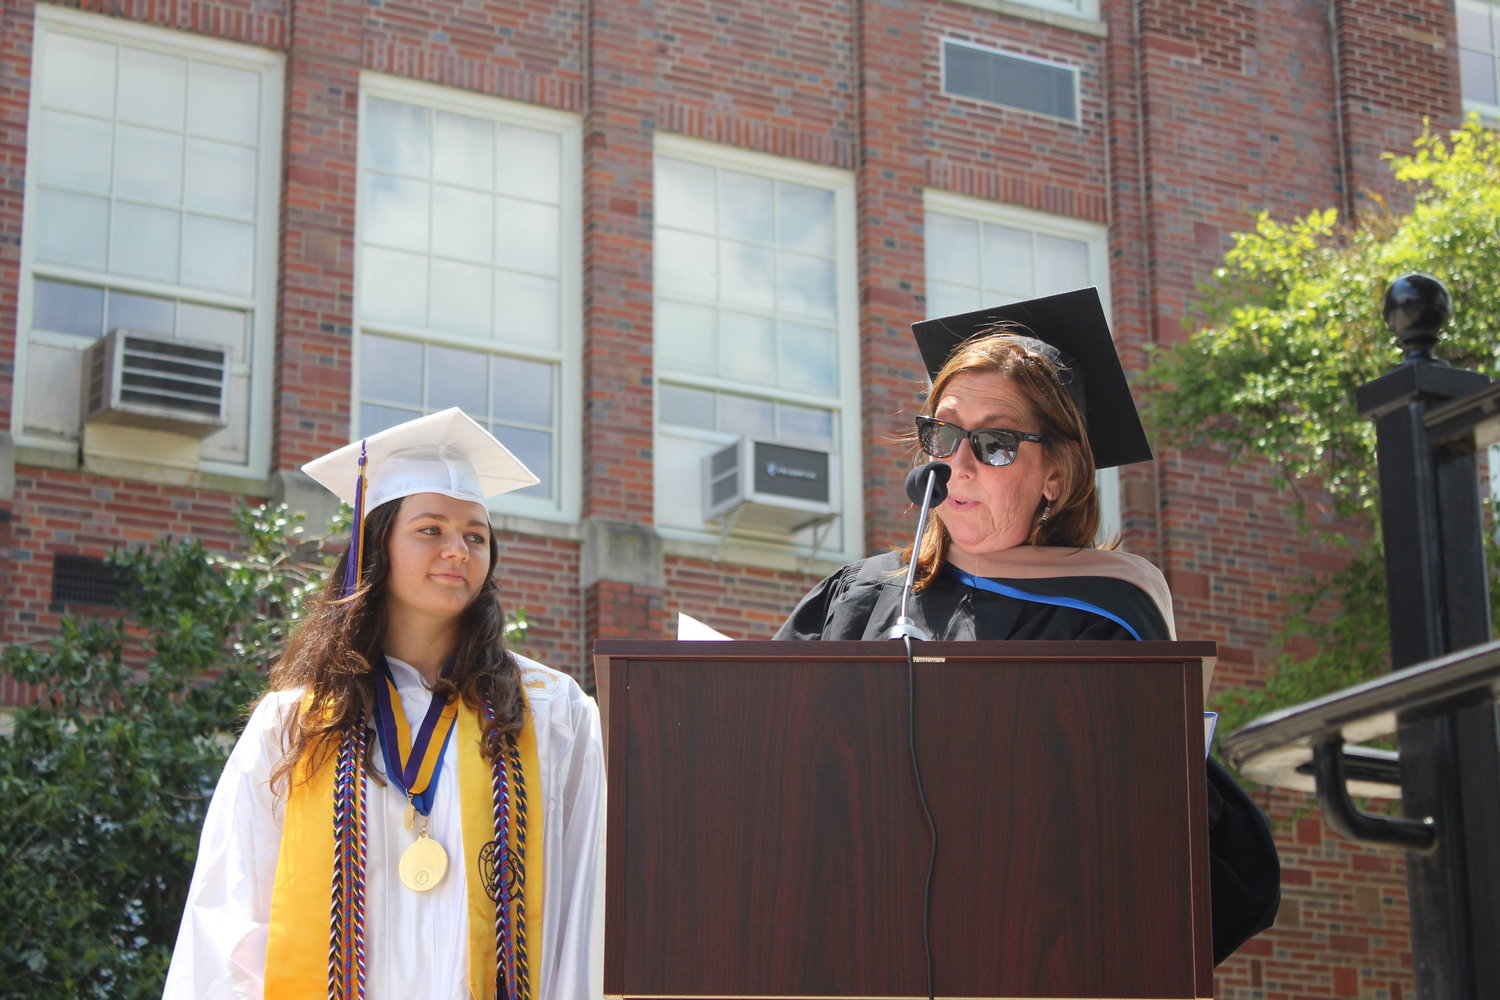 Oyster Bay High School Principal Ms. Sharon Lasher presents the Beekman Medal, the highest honor bestowed upon a graduating senior, to Maggie Ford.